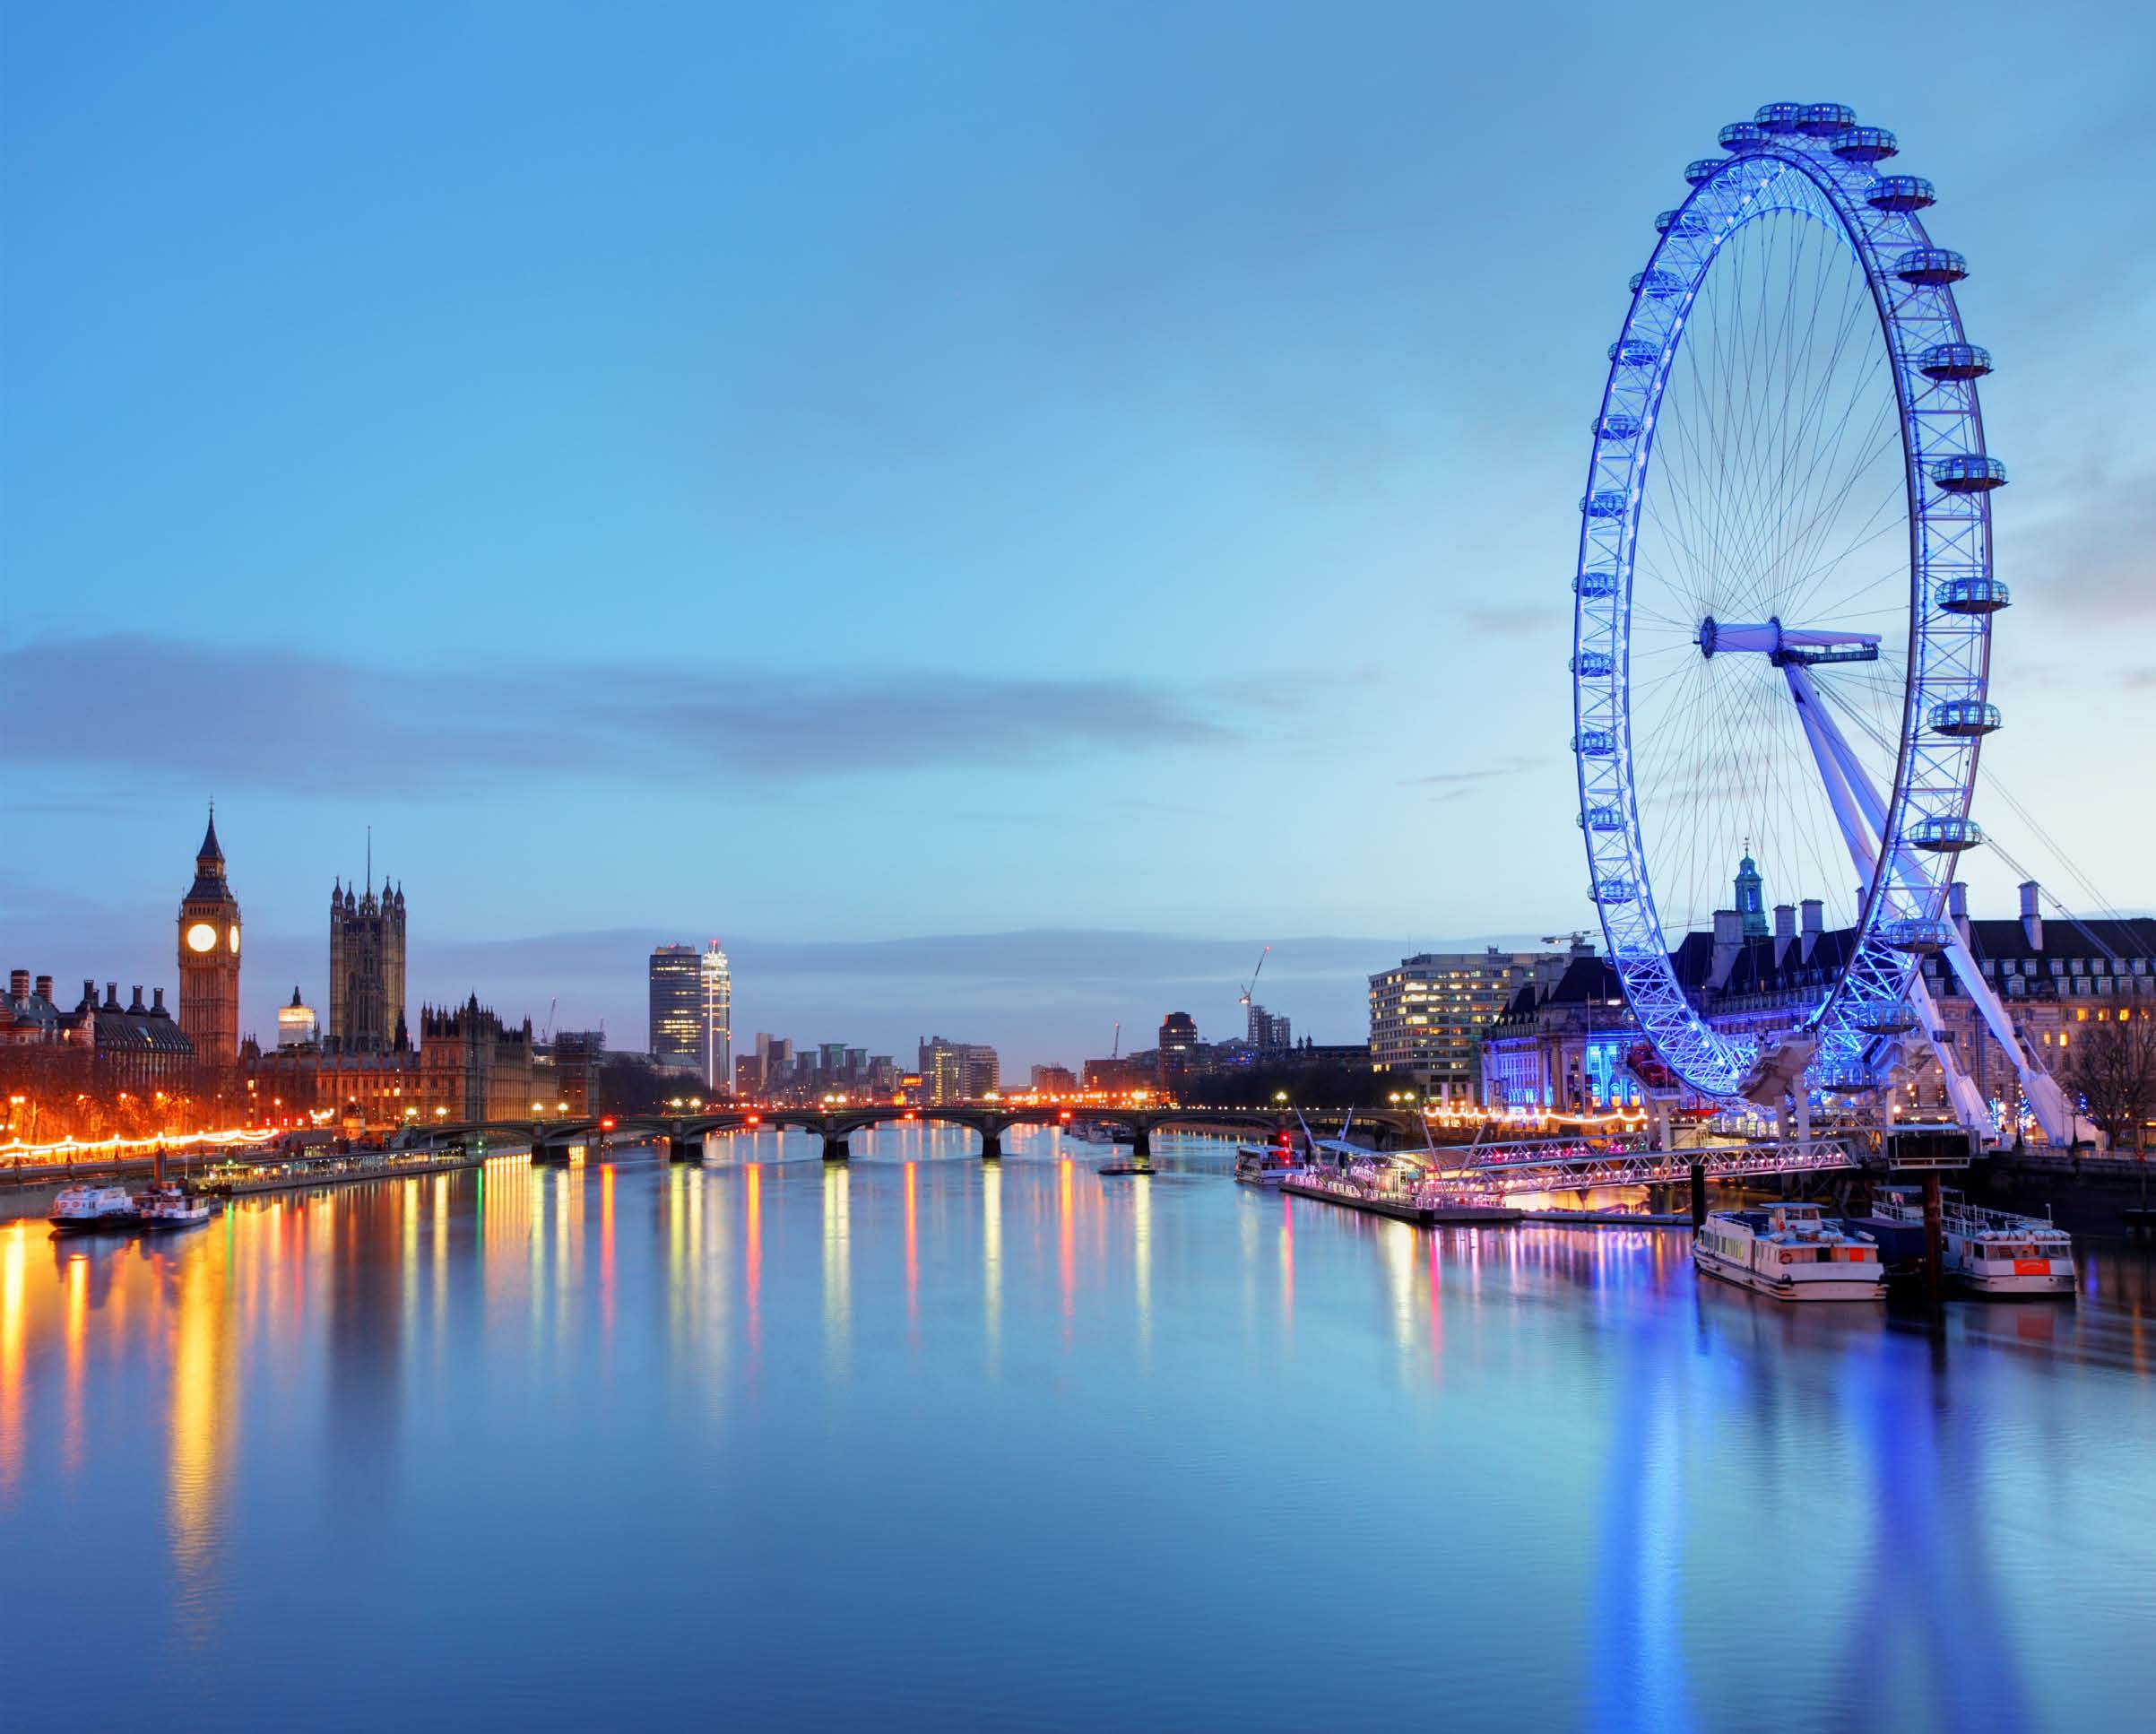 A WOMAN'S GUIDE TO LONDON